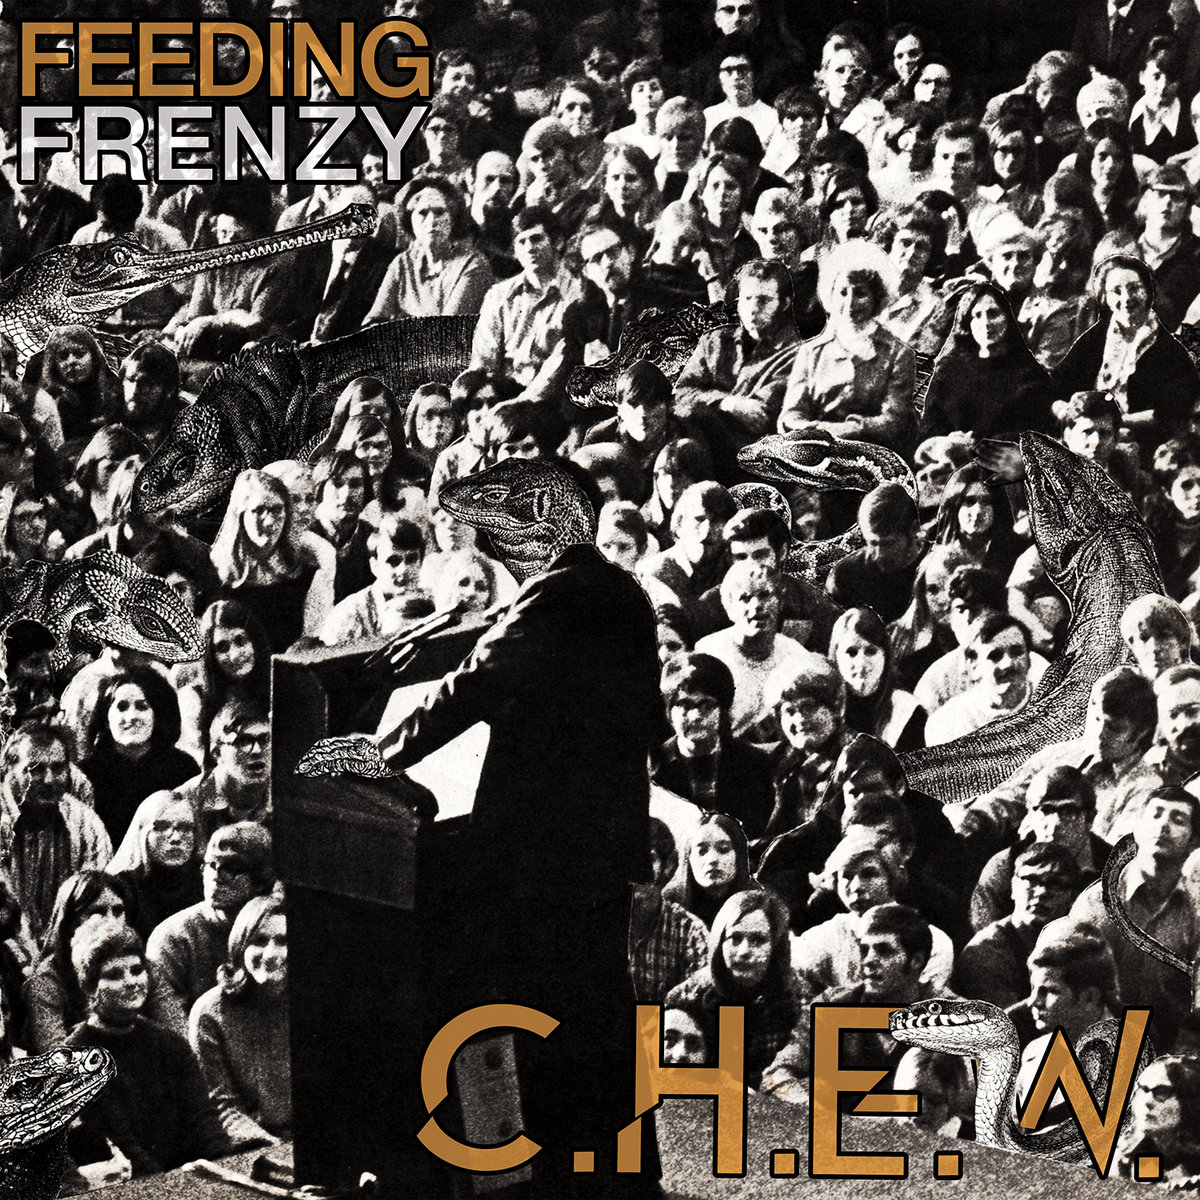 C.H.E.W. - Feeding FrenzySeptember 28thLocal hardcore quartet C.H.E.W. is the most intense act we witnessed in 2018, and their new record Feeding Frenzy carries the same raw power as their live show. Doris Carroll's potent bellows just decimate the competition. If you're a lover of hardcore and don't own this record, it's time to correct that mistake. They are opening for Portrayal of Guilt downstairs at the Sub T on February 20th. Tix are $10.-KPL